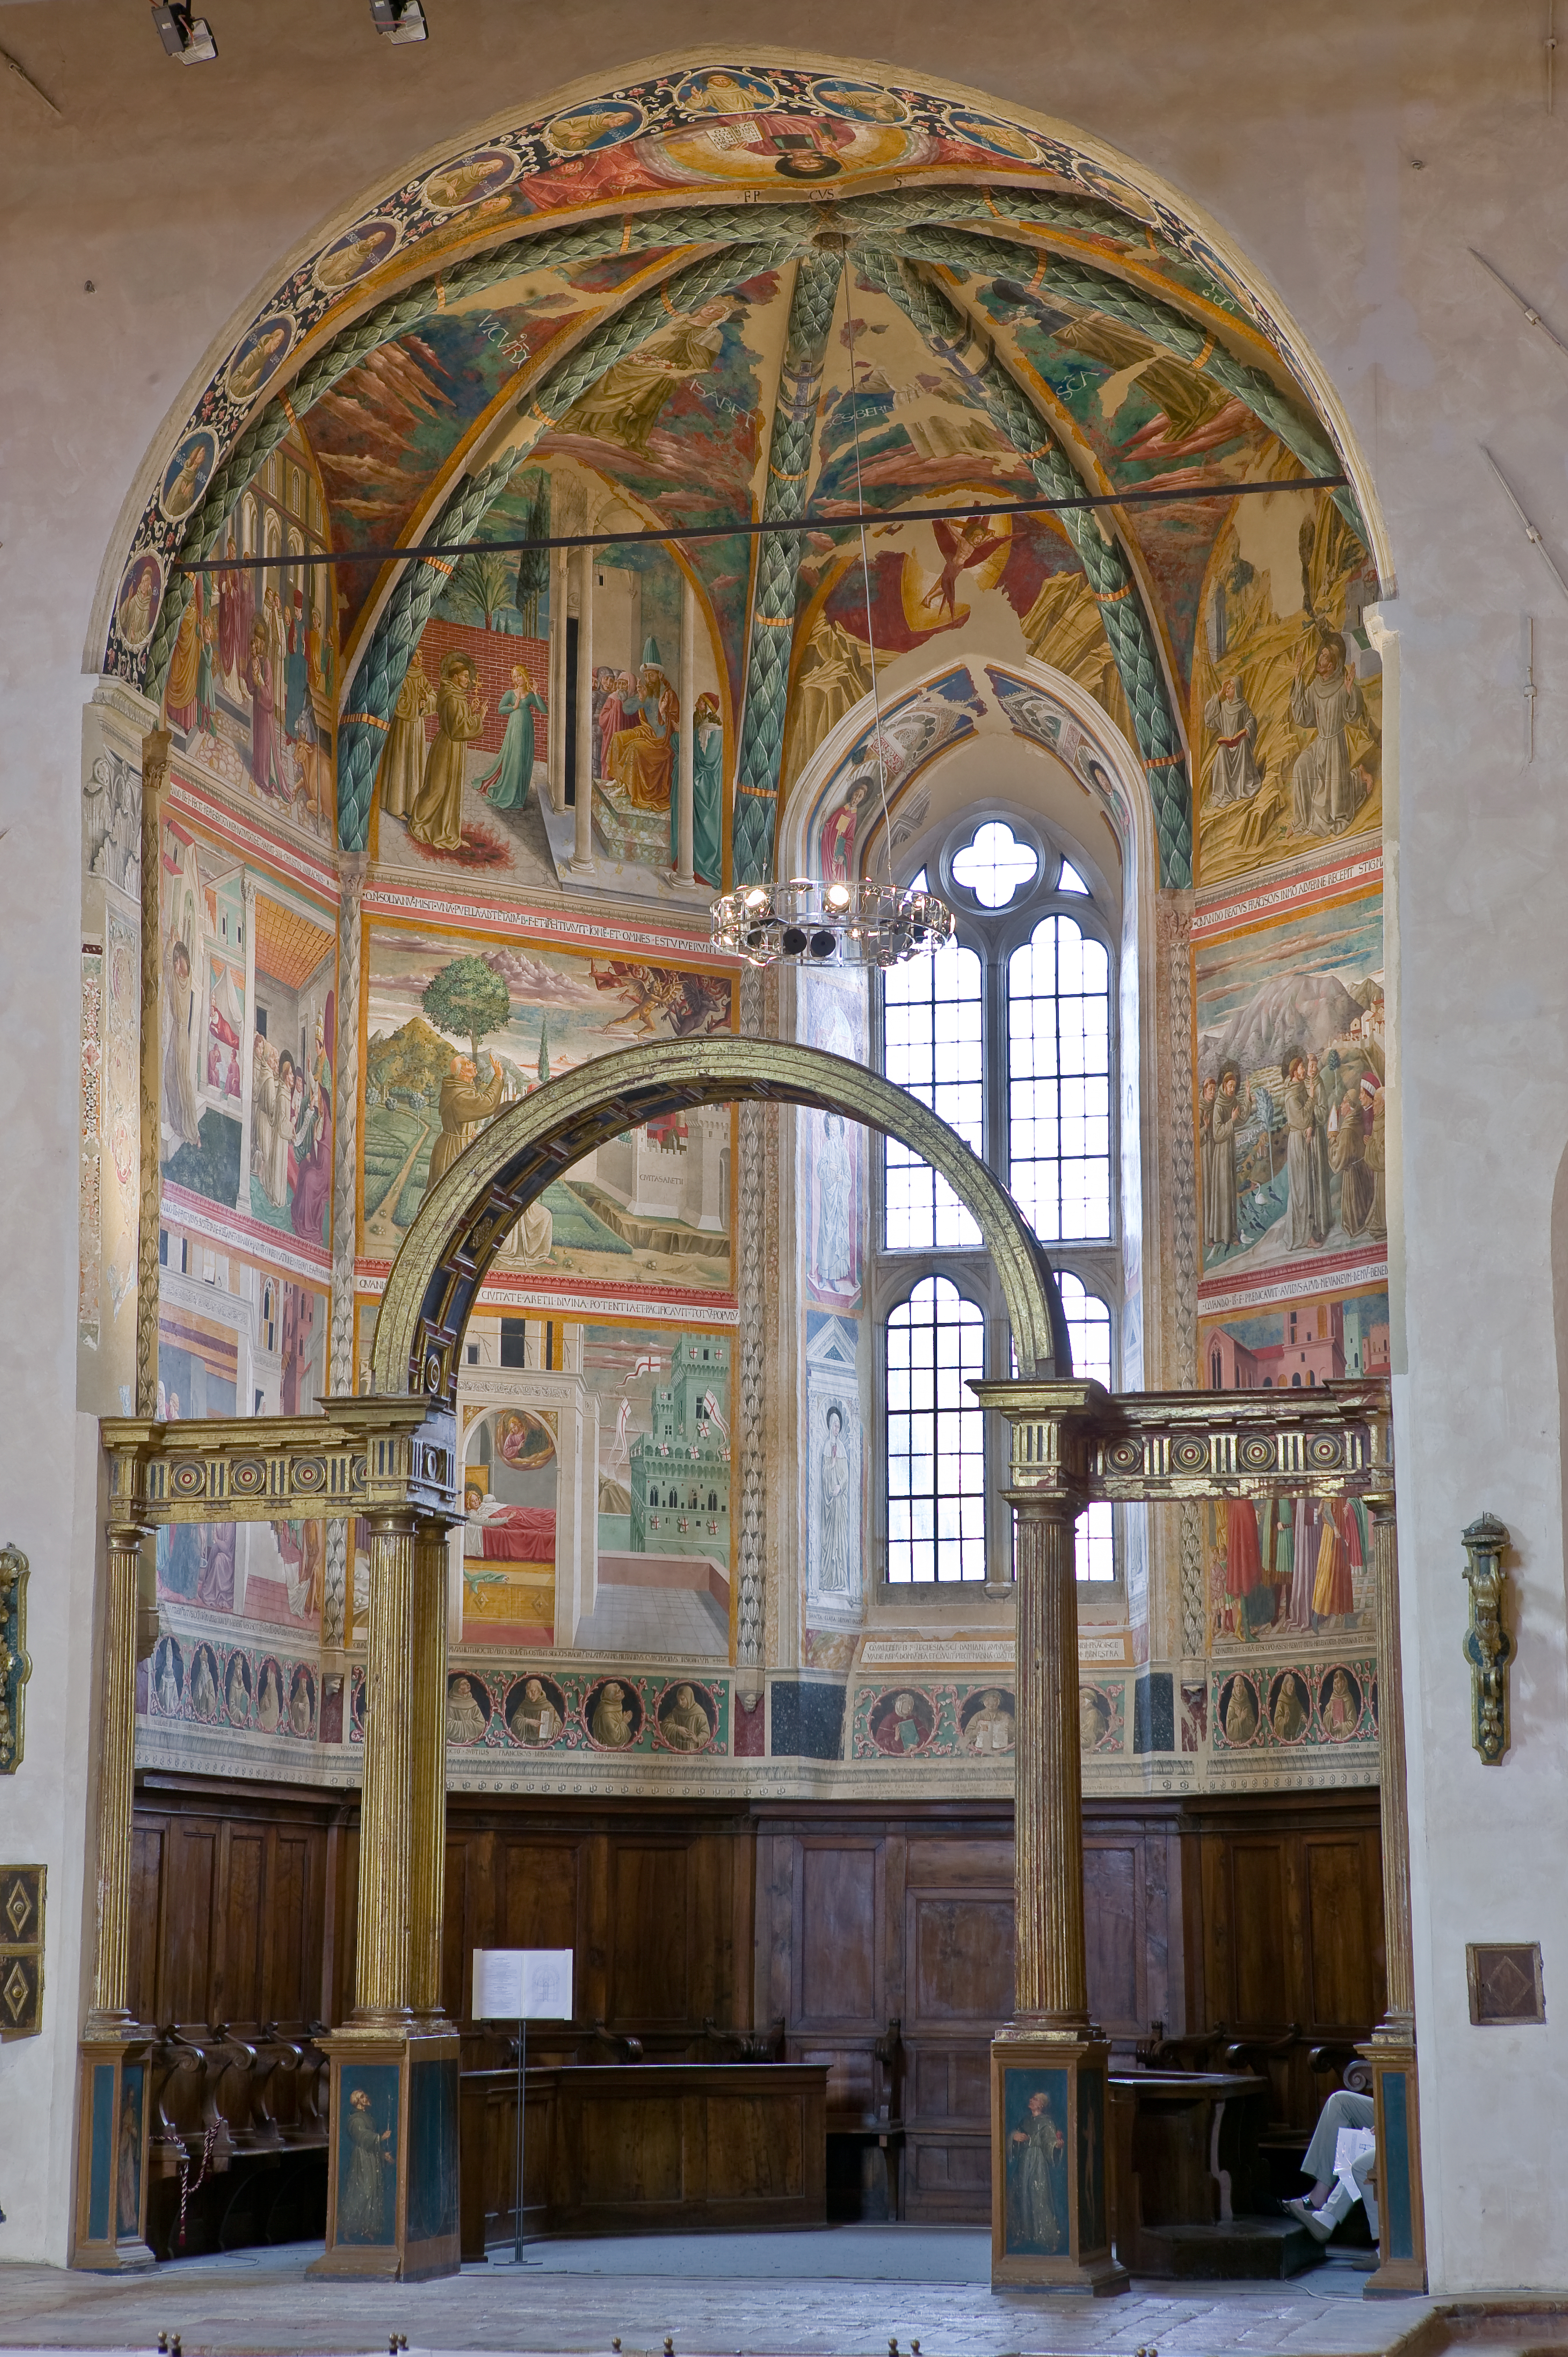 Montefalco, Museum of St. Francis, Church of St. Francis: the central apse with frescoes on the life of St. Francis, by Benozzo Gozzoli, 1450.